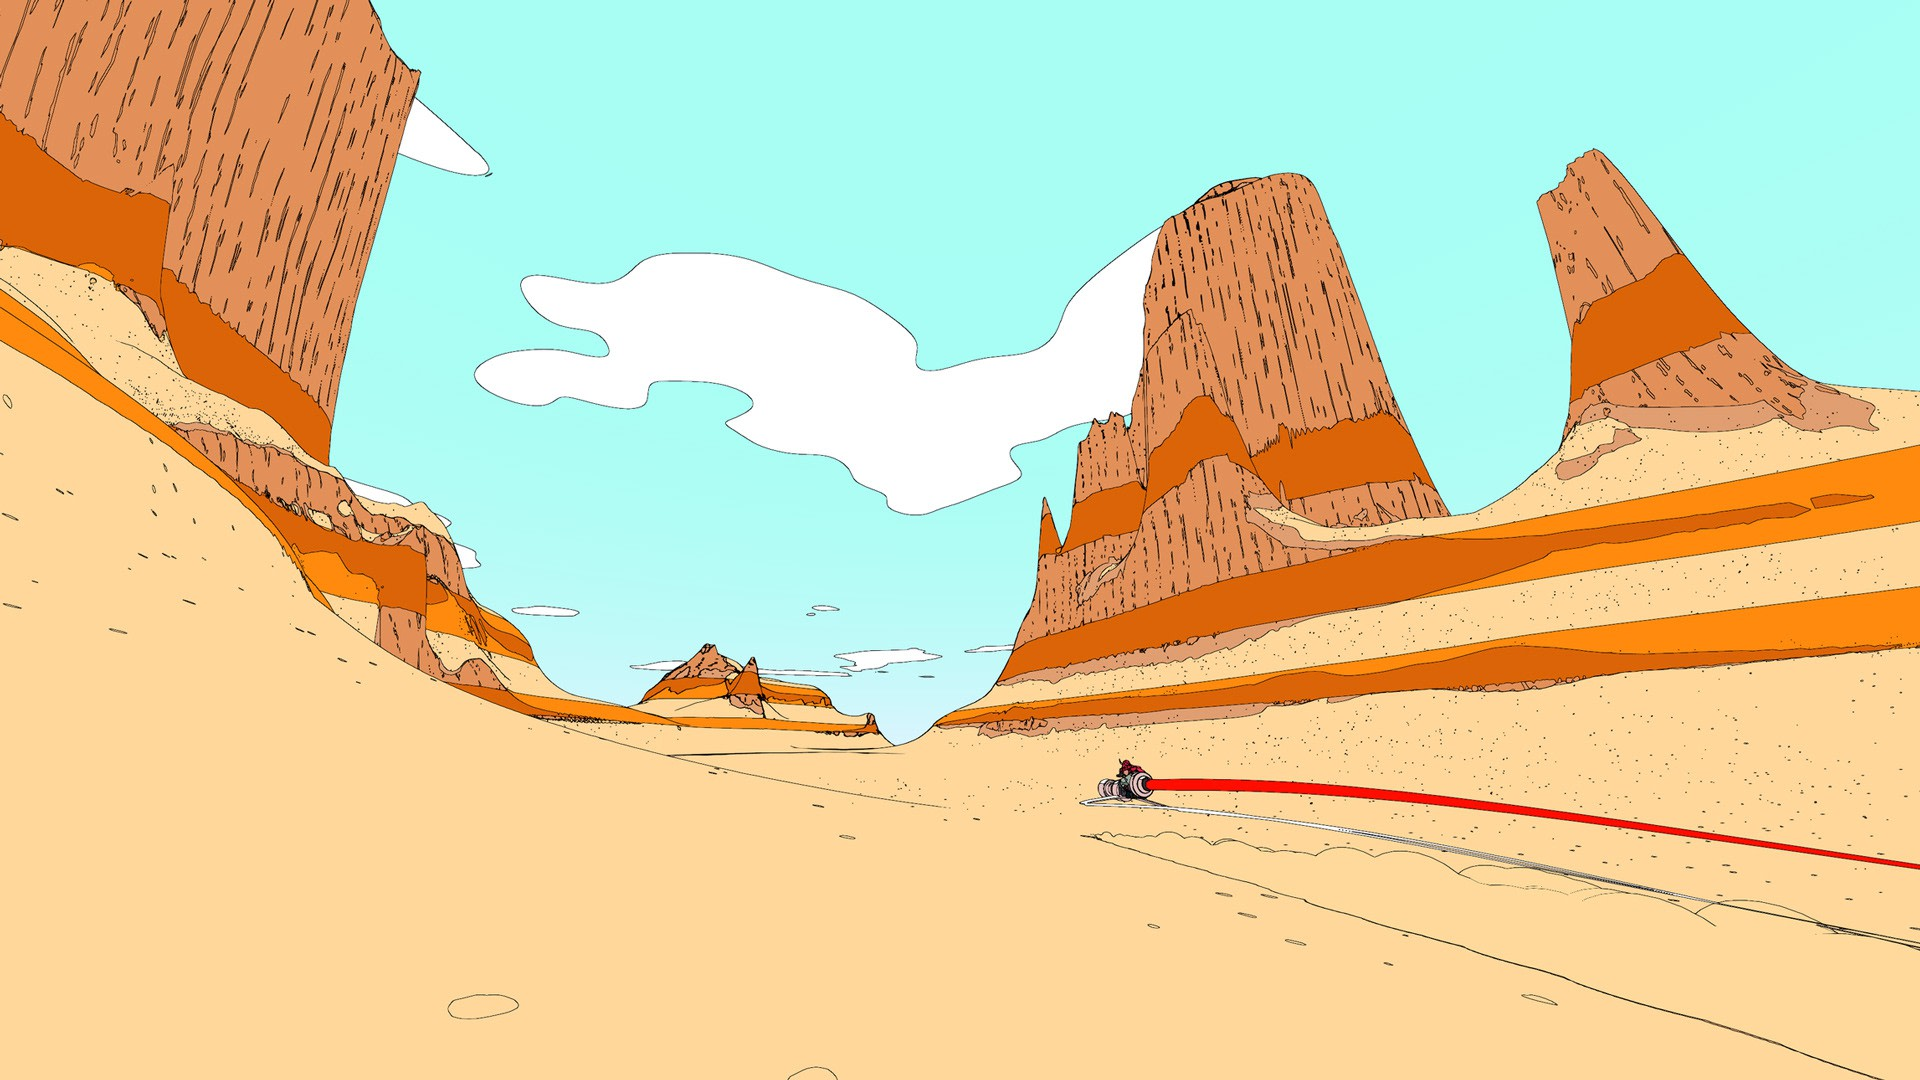 Racing across the desert, Sable